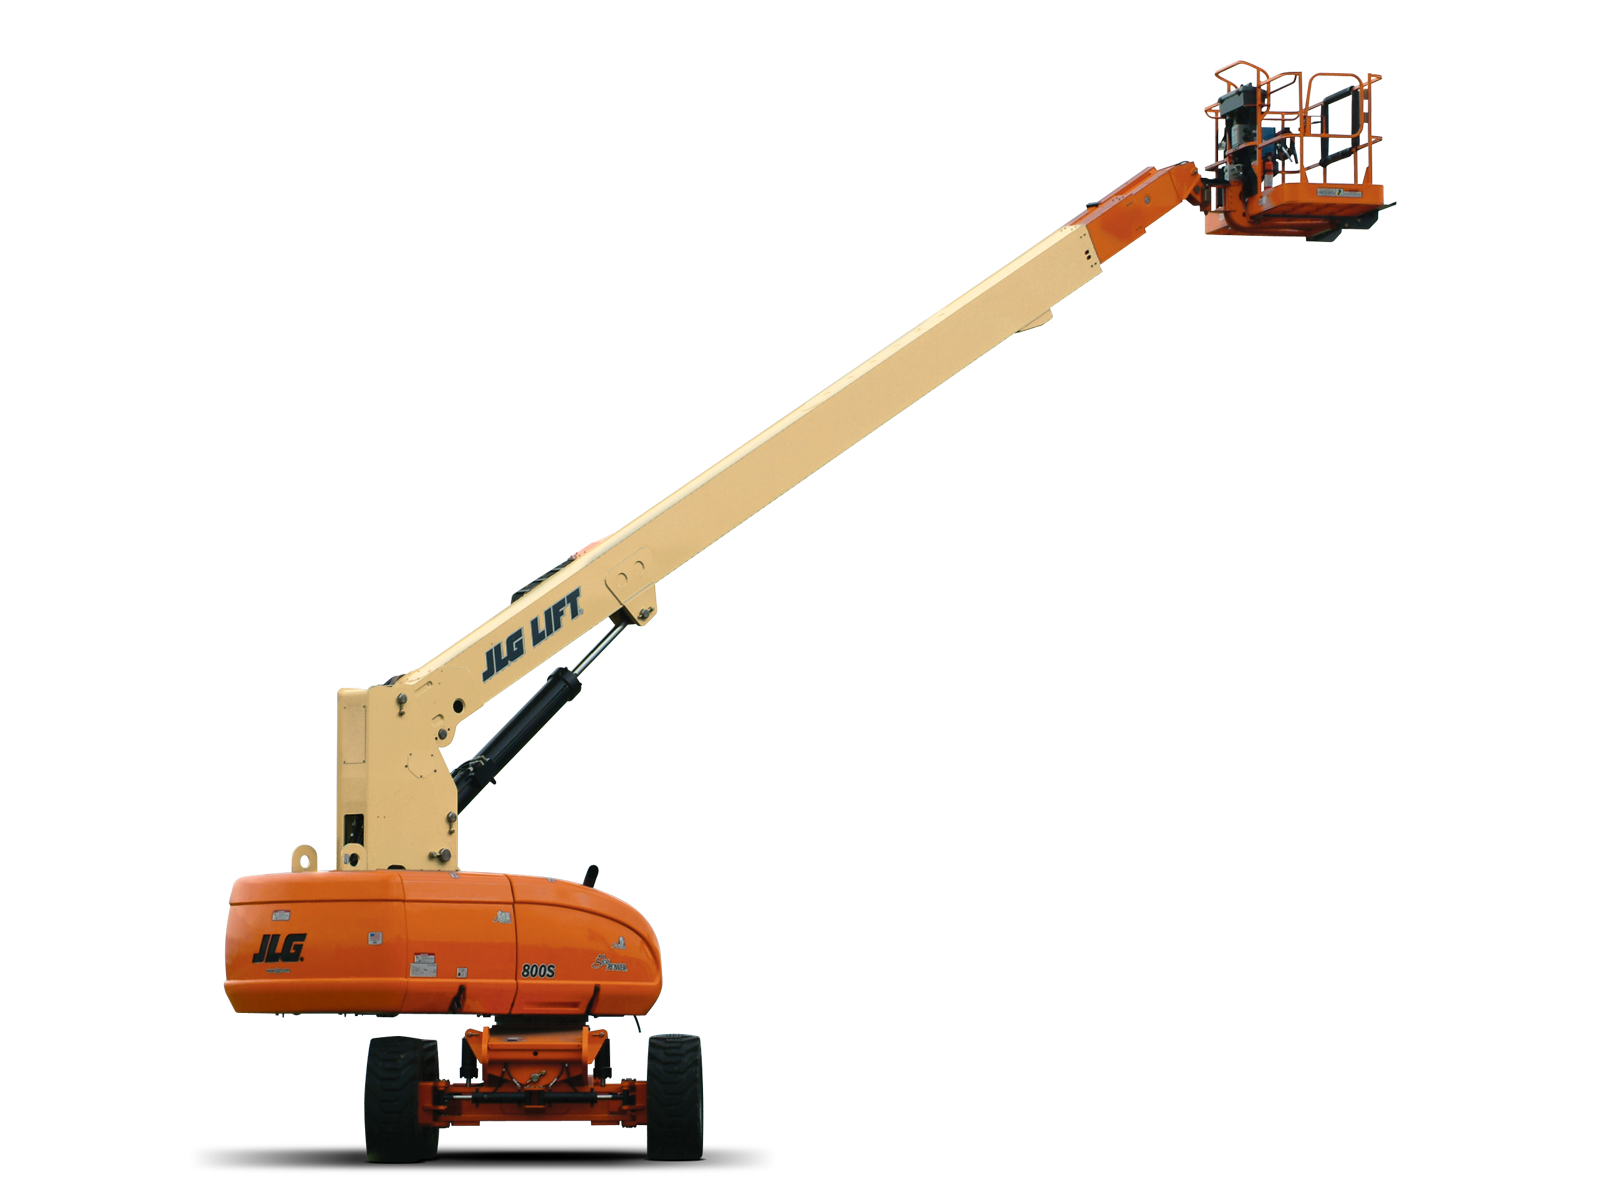 JLG 800S | Telescopic Boom Lift on Hire | WESTERN INDIA SKY LIFTER